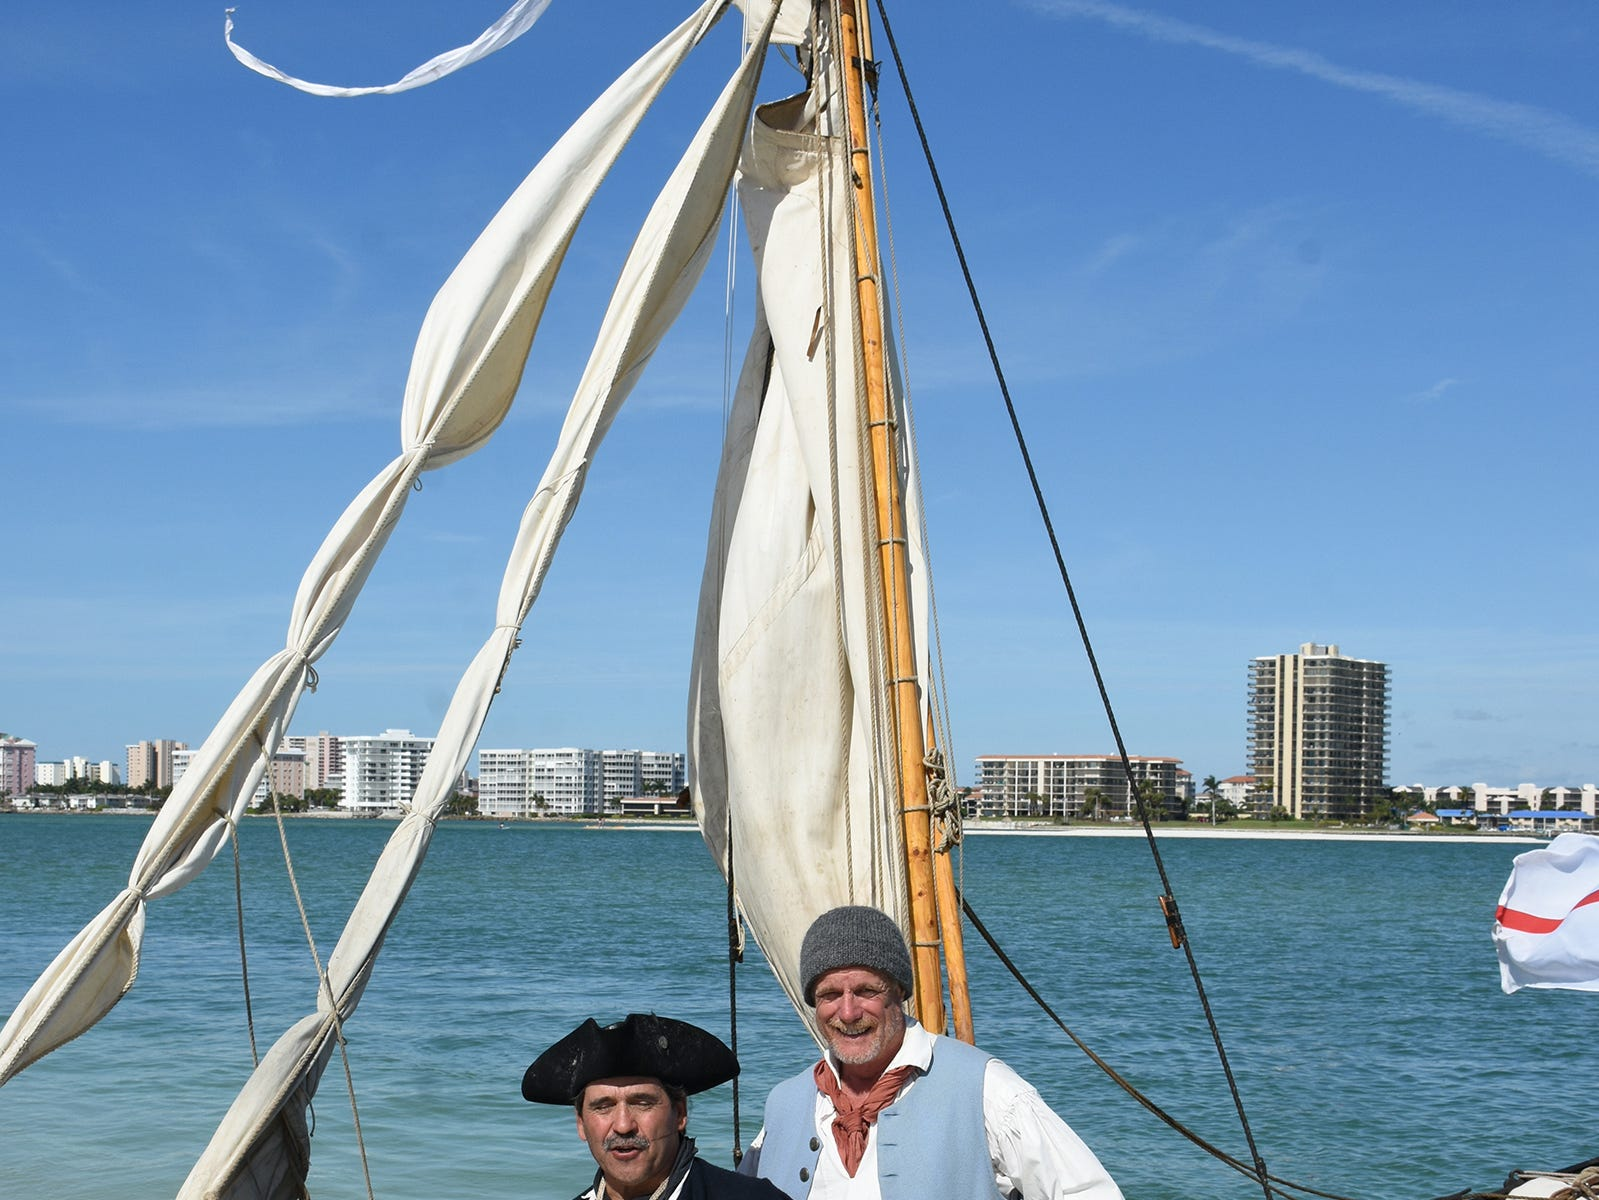 Capt. Scott Padeni and Bob Cifrino with the gunboat Gen. Arnold. A group of historical reenactors dedicated to living the life of 18th century swashbucklers set up a pirate camp on Kice Island, across Caxambas Pass from Cape Marco, over the weekend.